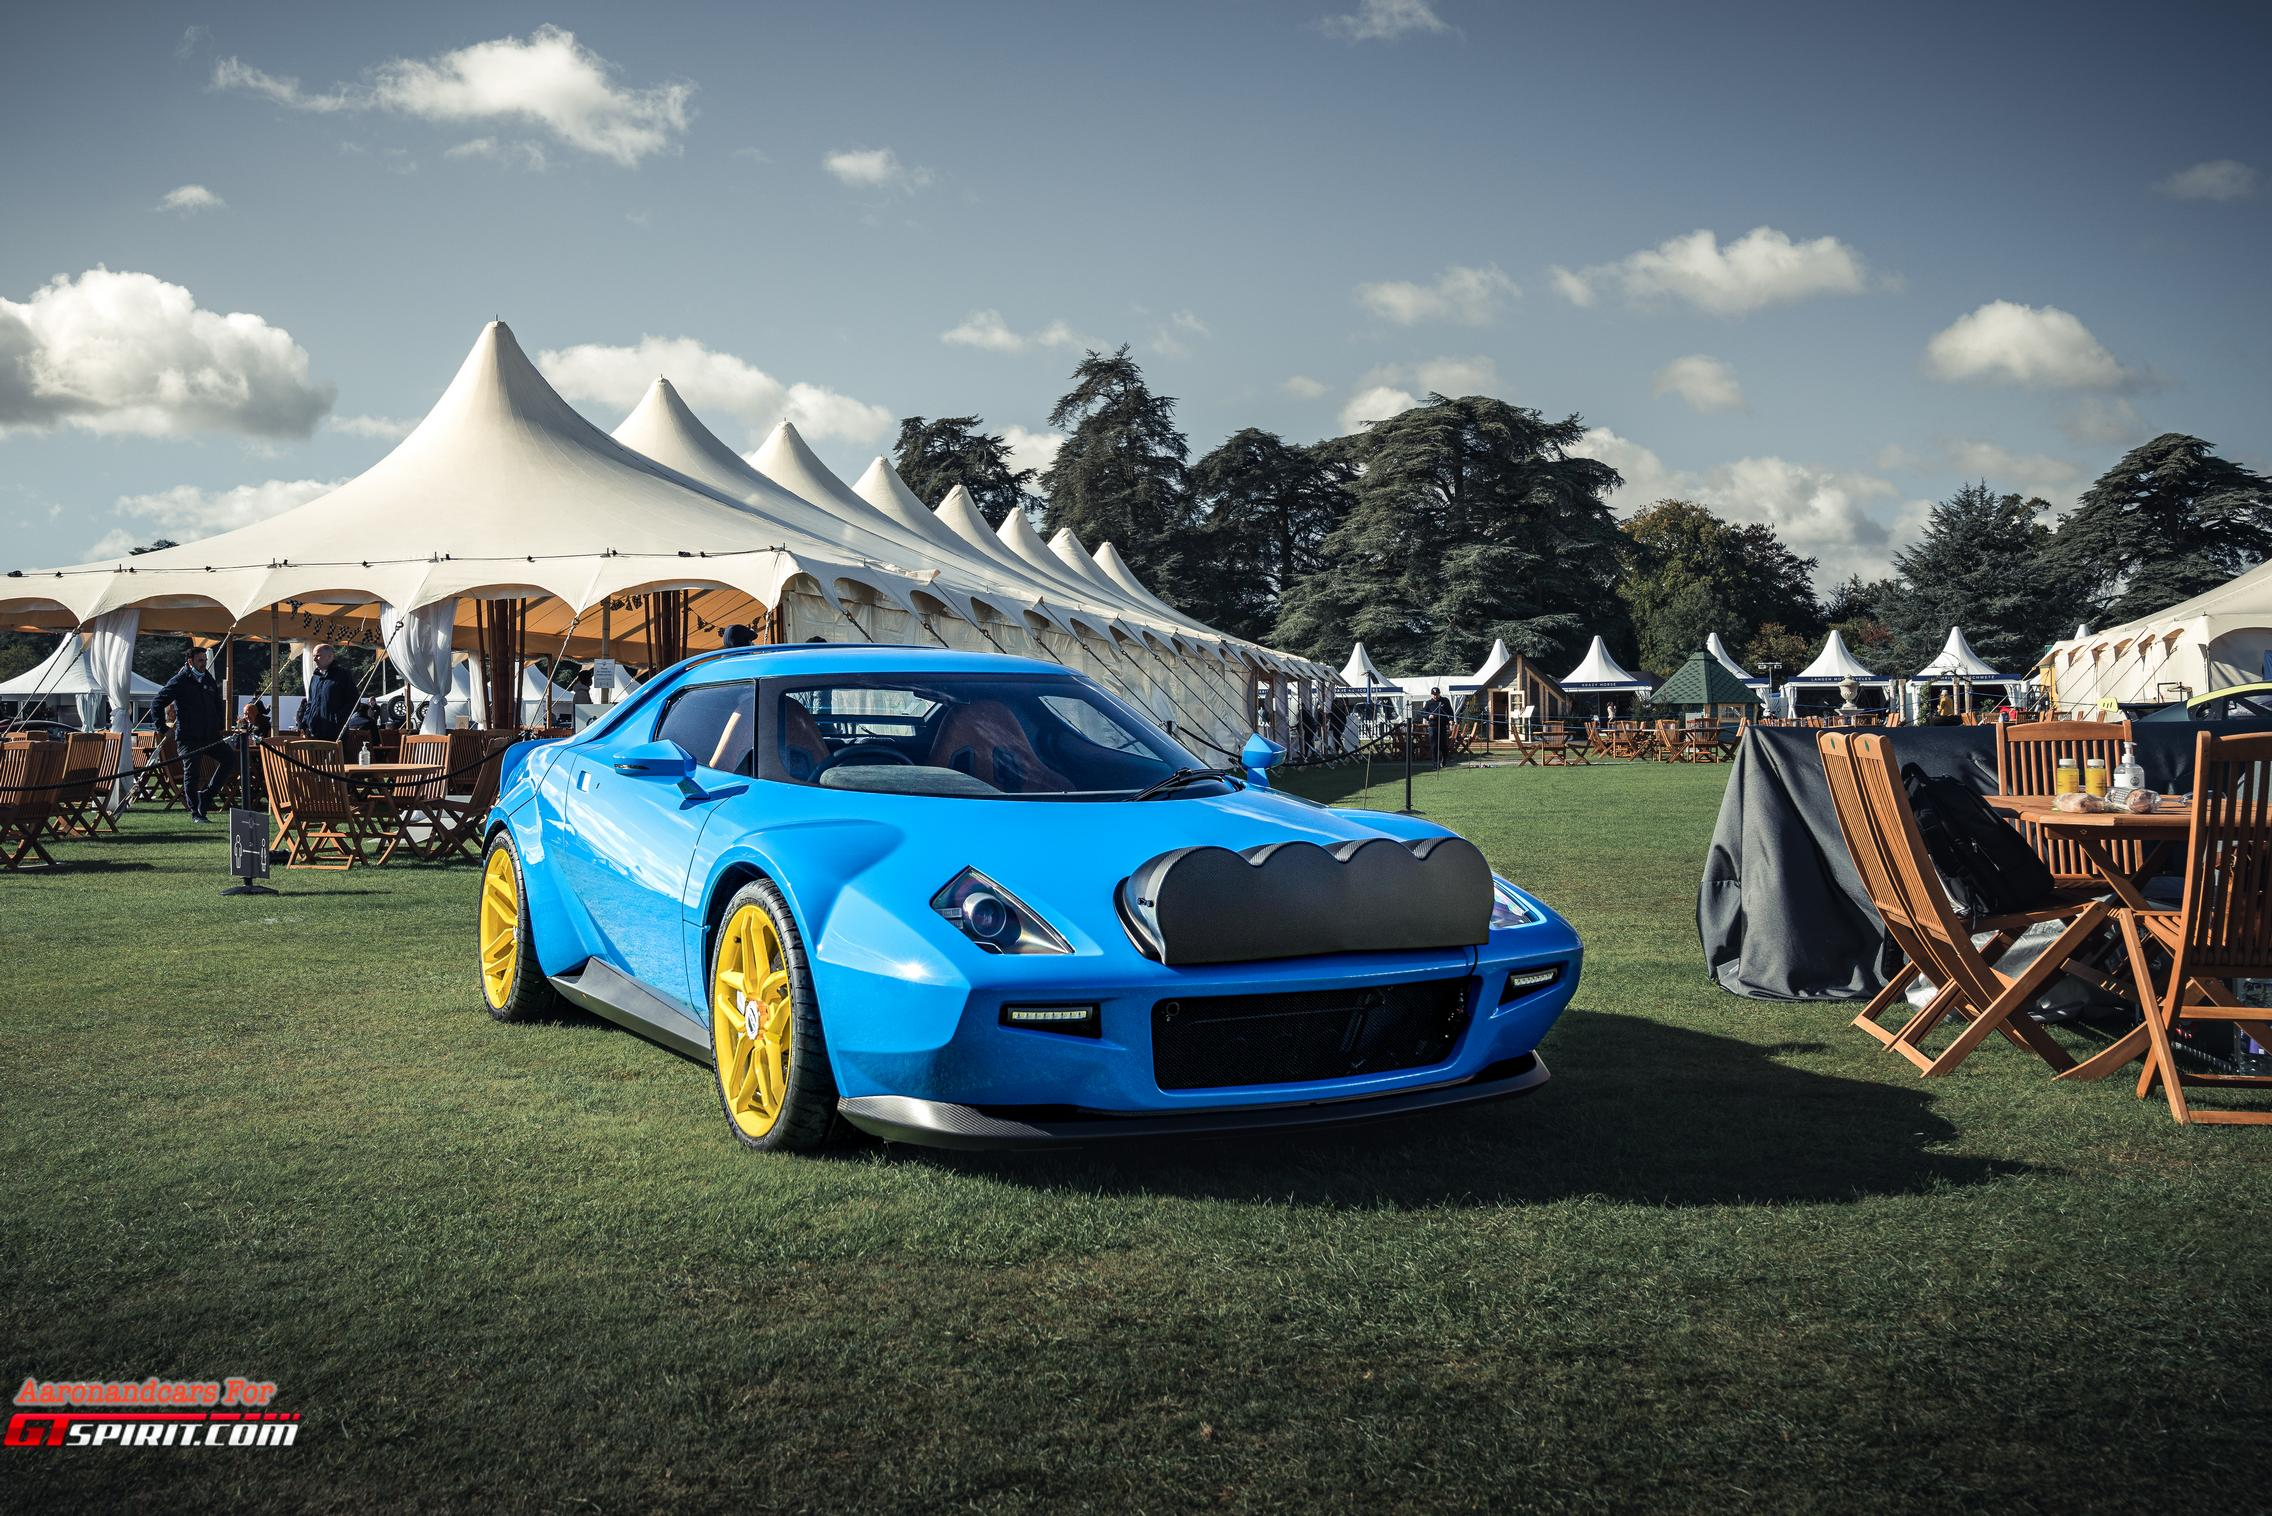 Salon Prive 2020 Lancia